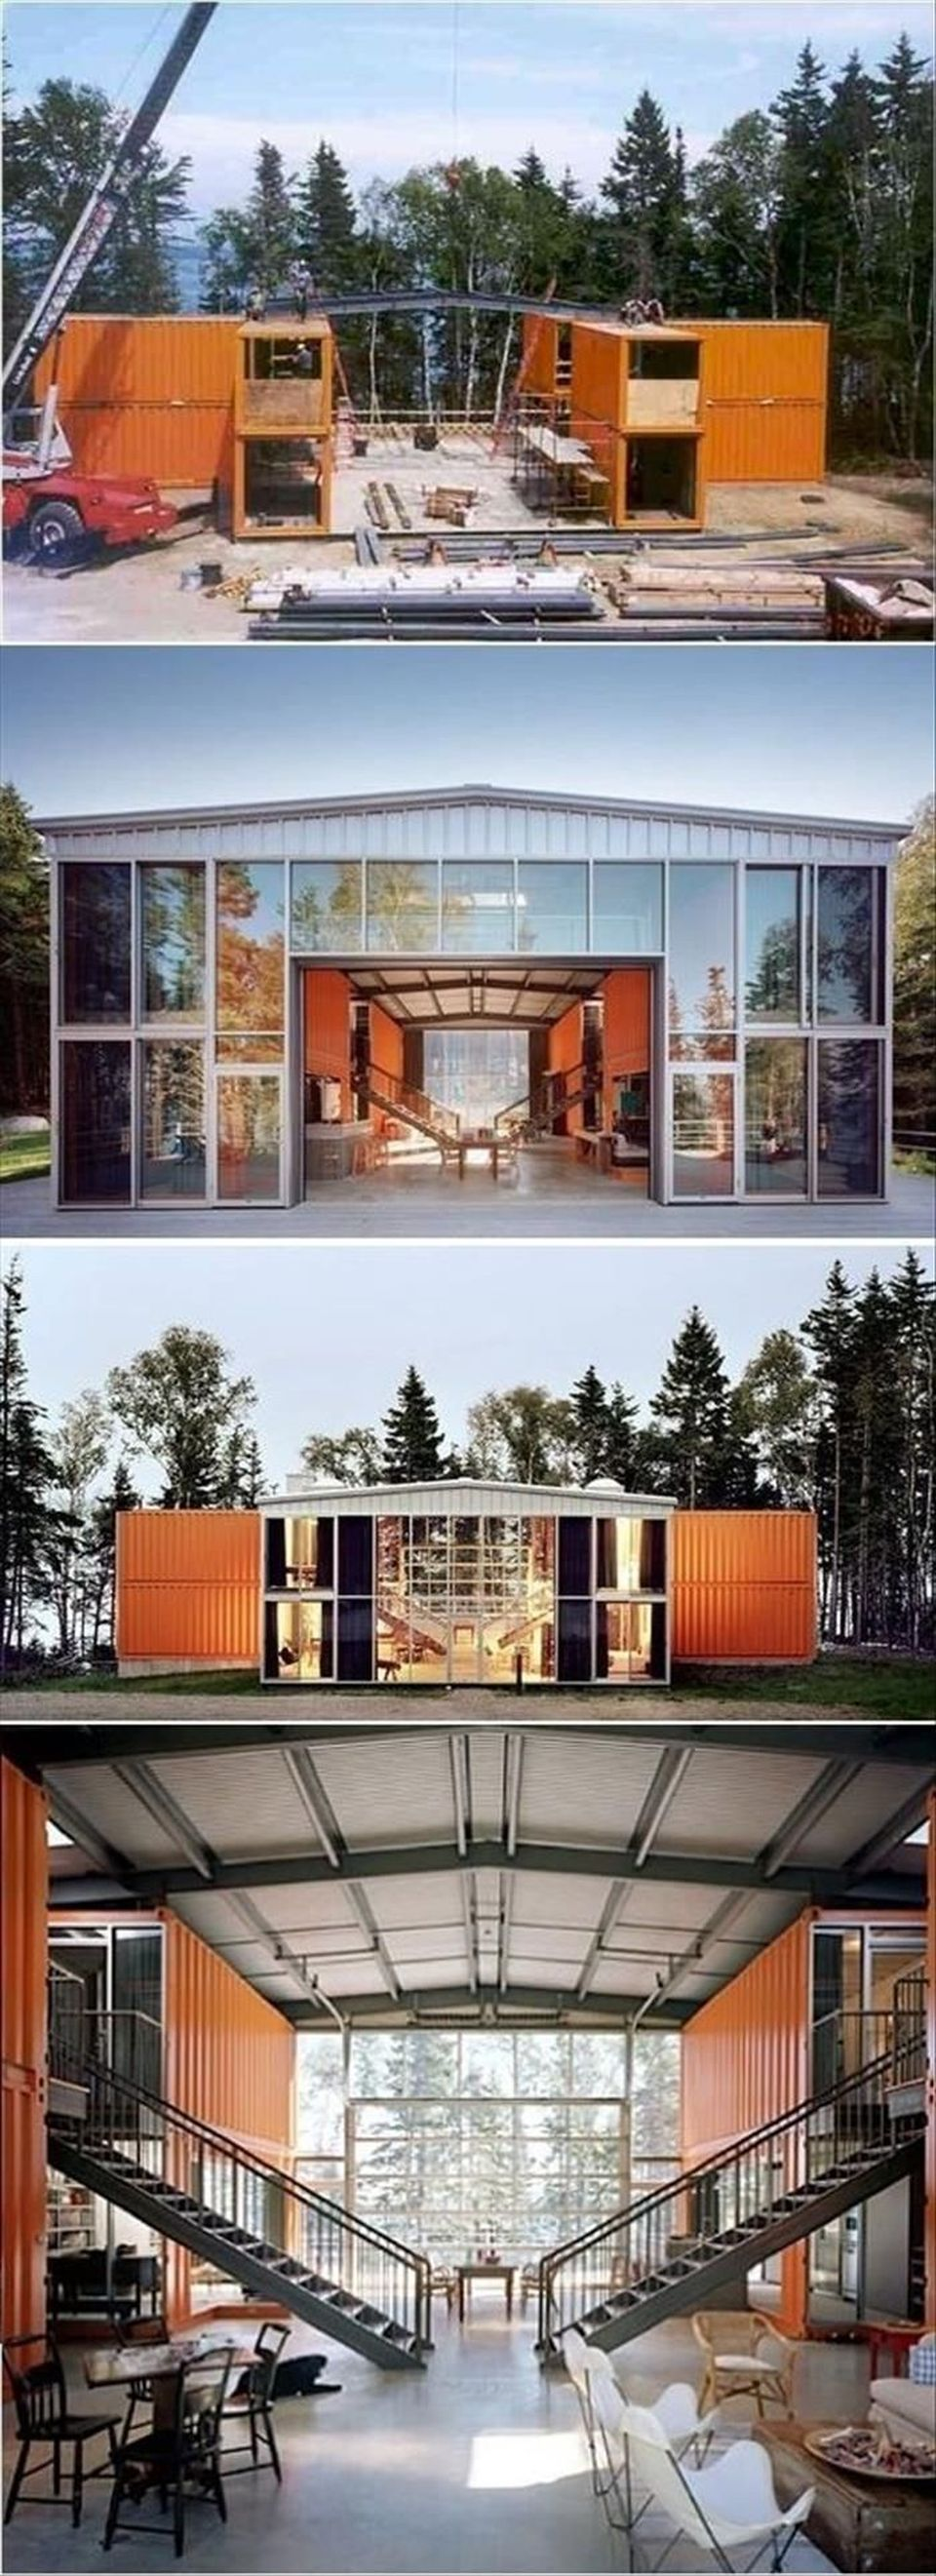 100+ Amazing Shipping Container House Design Ideas | Container house on shipping container cabin, shipping container home interior, shipping container ideas, shipping container apartments, garden architect designs, shipping container tiny home, modern shipping container home designs, shipping container architecture, shipping container house plans, shipping container home on wheels, shipping container home plans or blueprints, shipping container designers, shipping container home plans & designs, metal container home designs, shipping container home builders, cargo shipping containers home designs, best shipping container designs, shipping container house redondo beach, shipping containers into homes, shipping container home library,